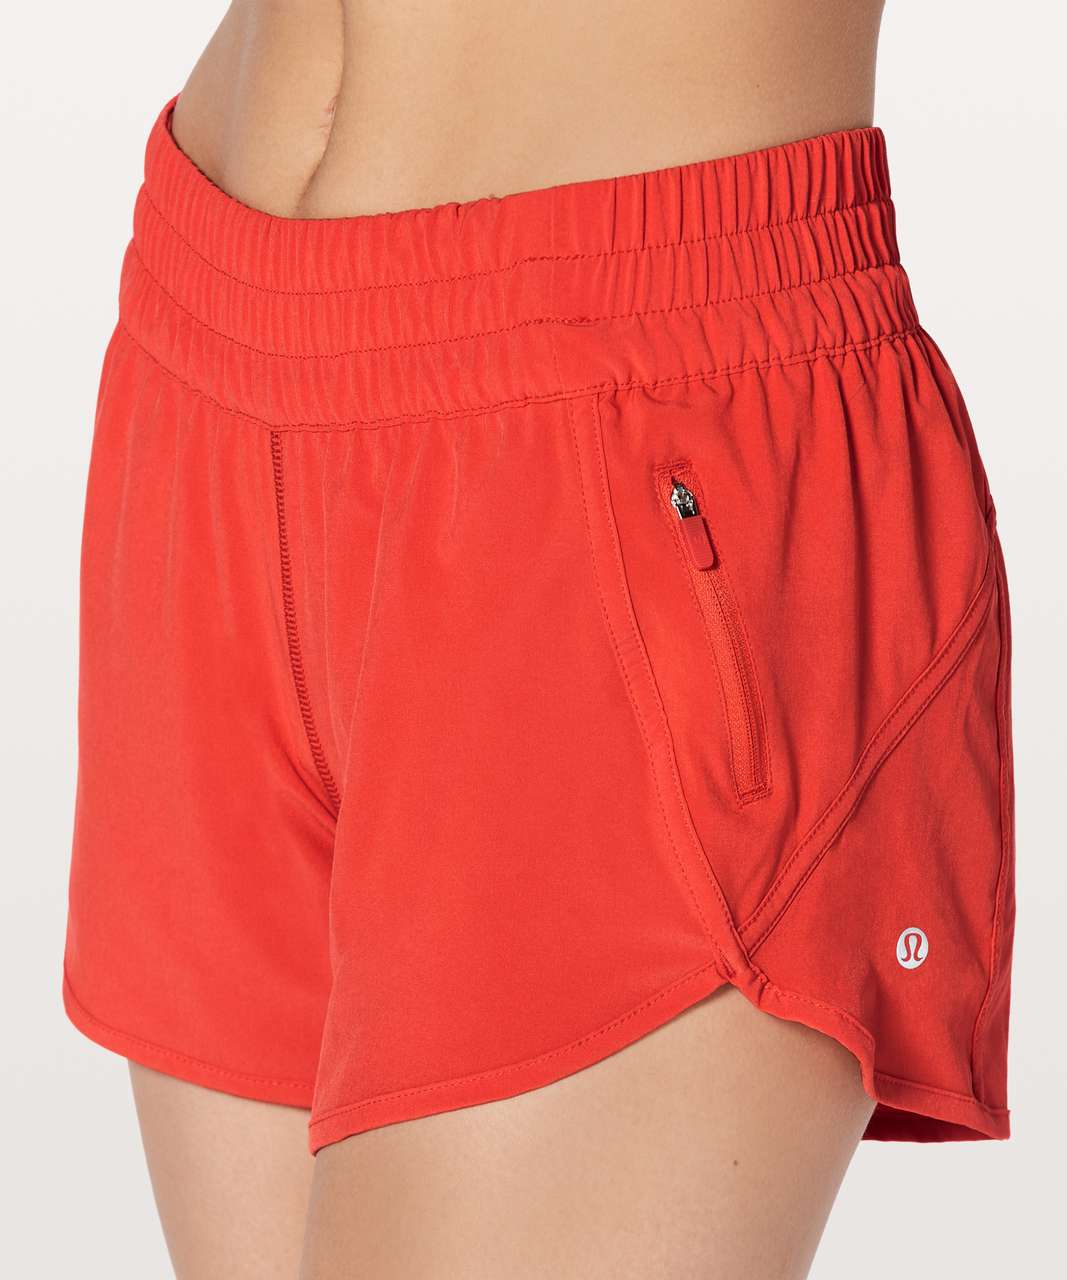 "Lululemon Tracker Short V *4"" - Vivid Flame"